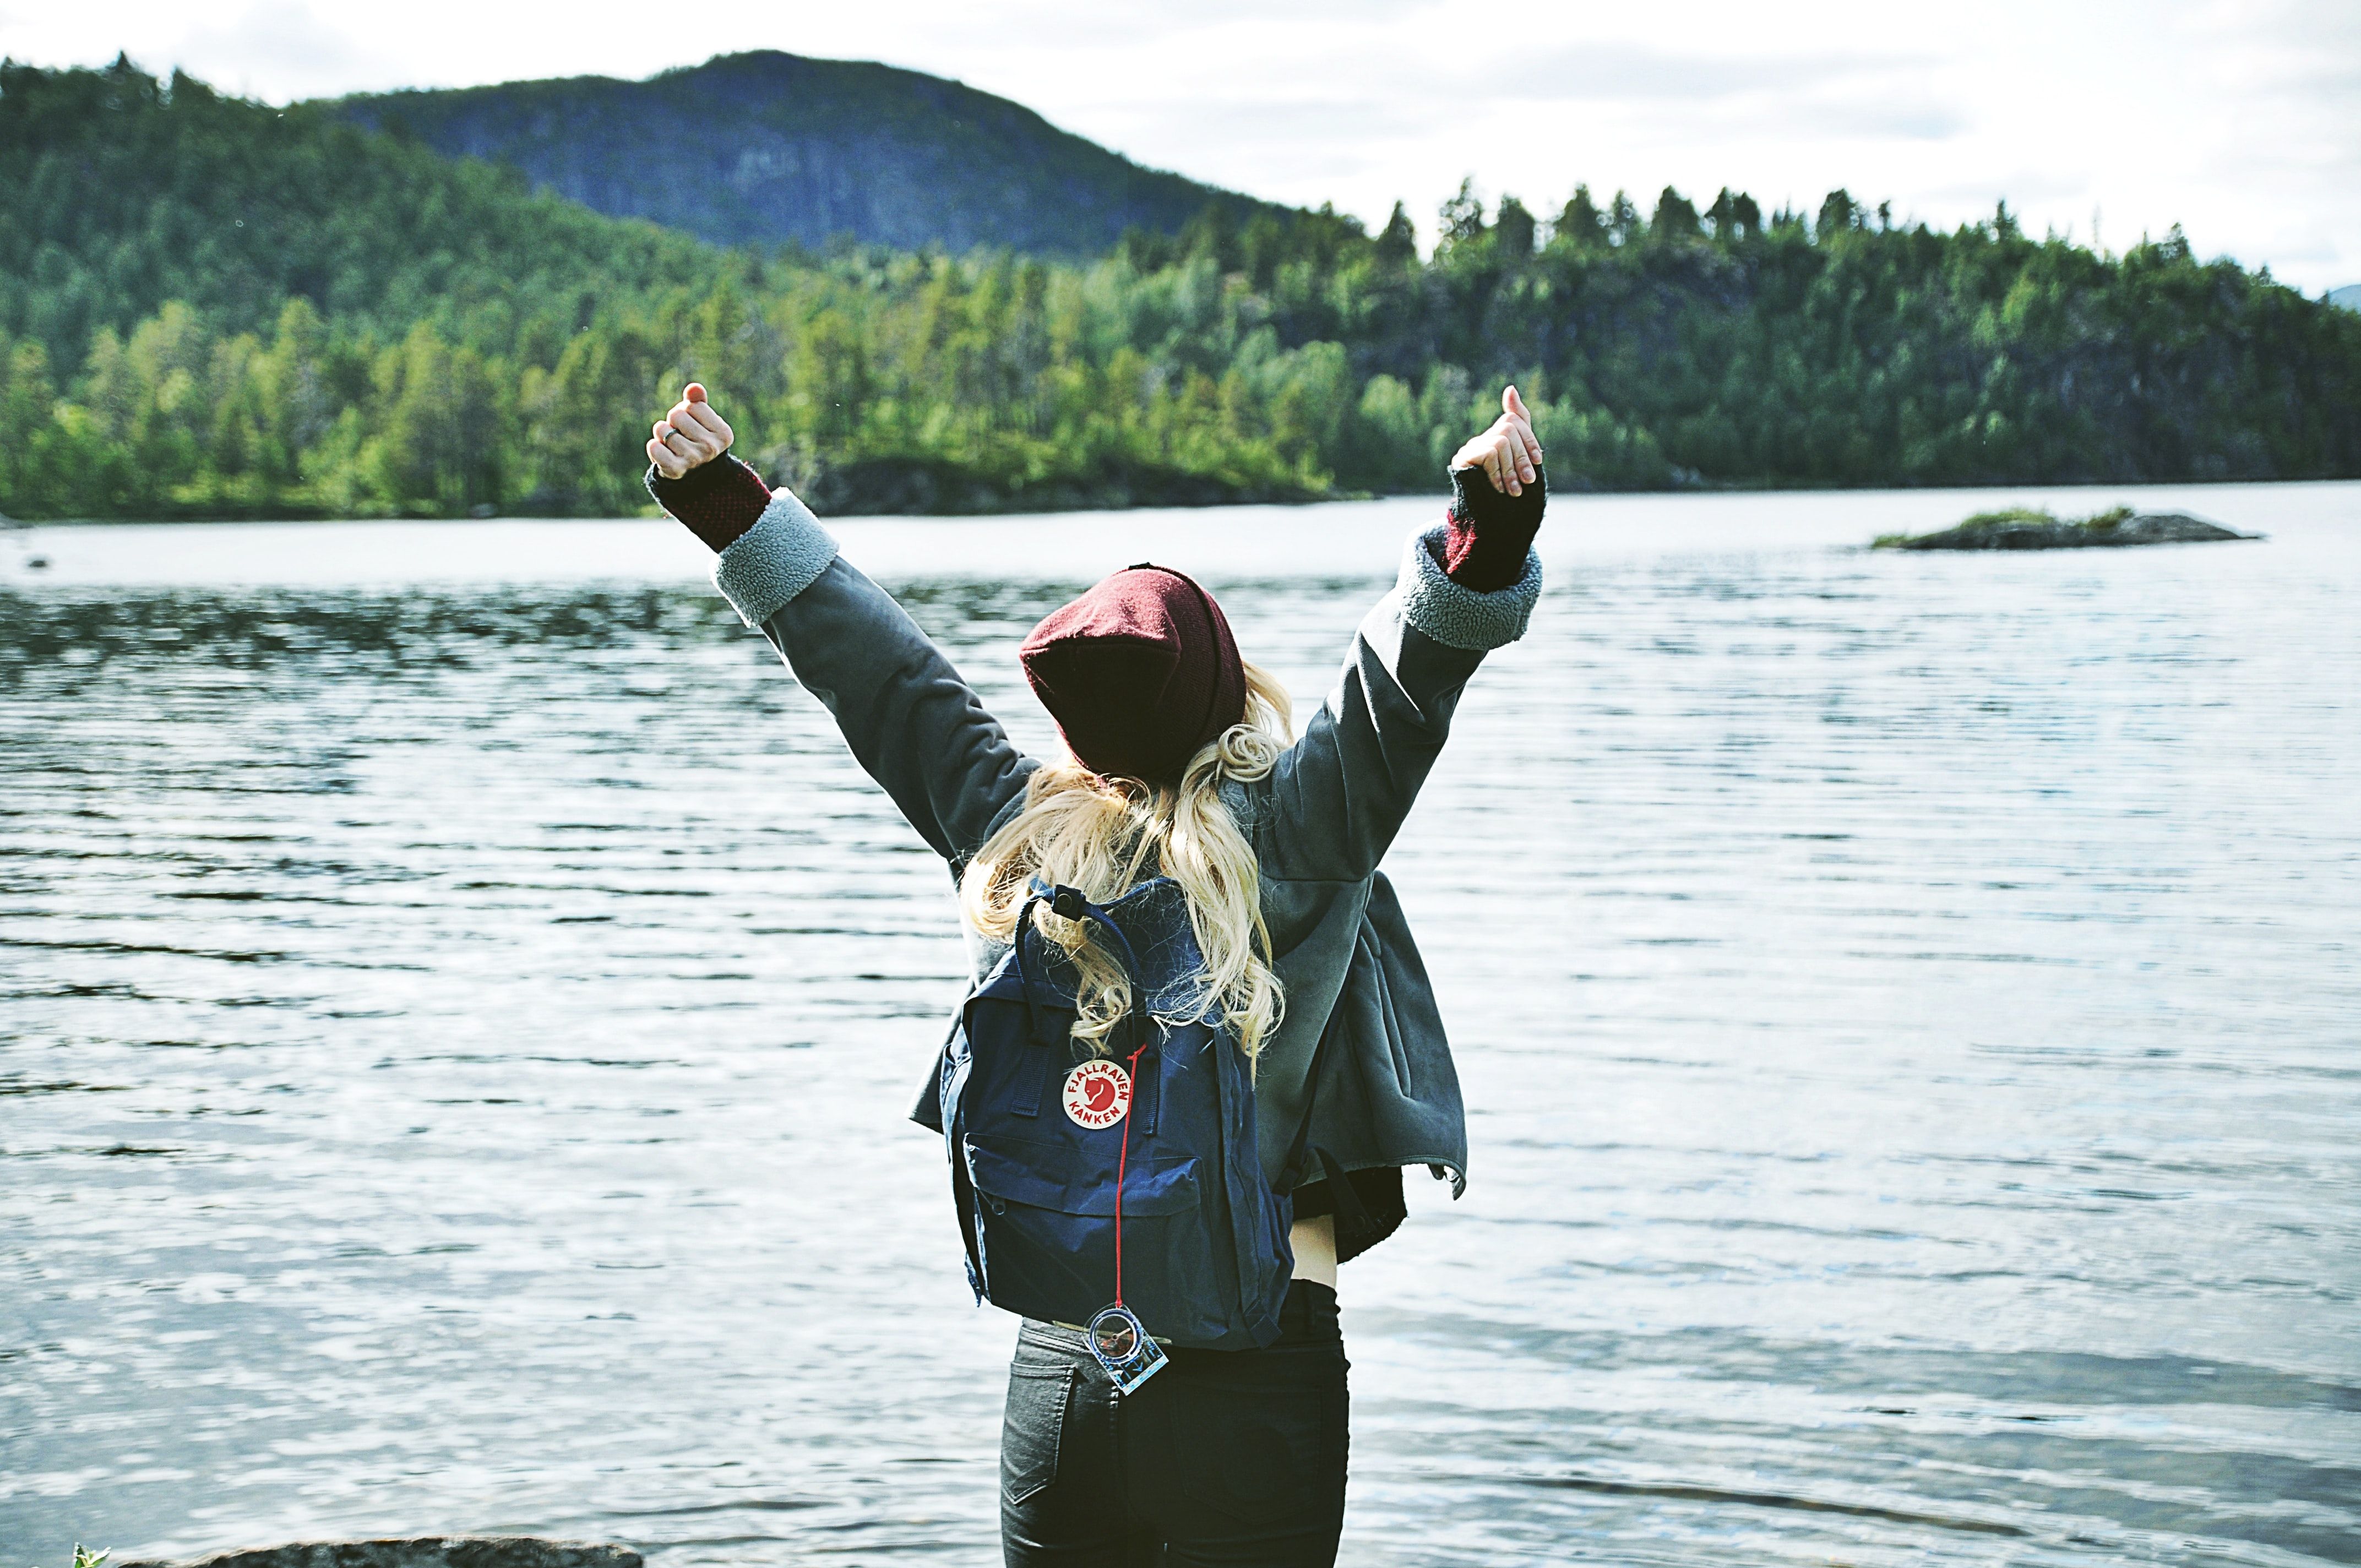 open arms, V victory, nature, young, free, wild